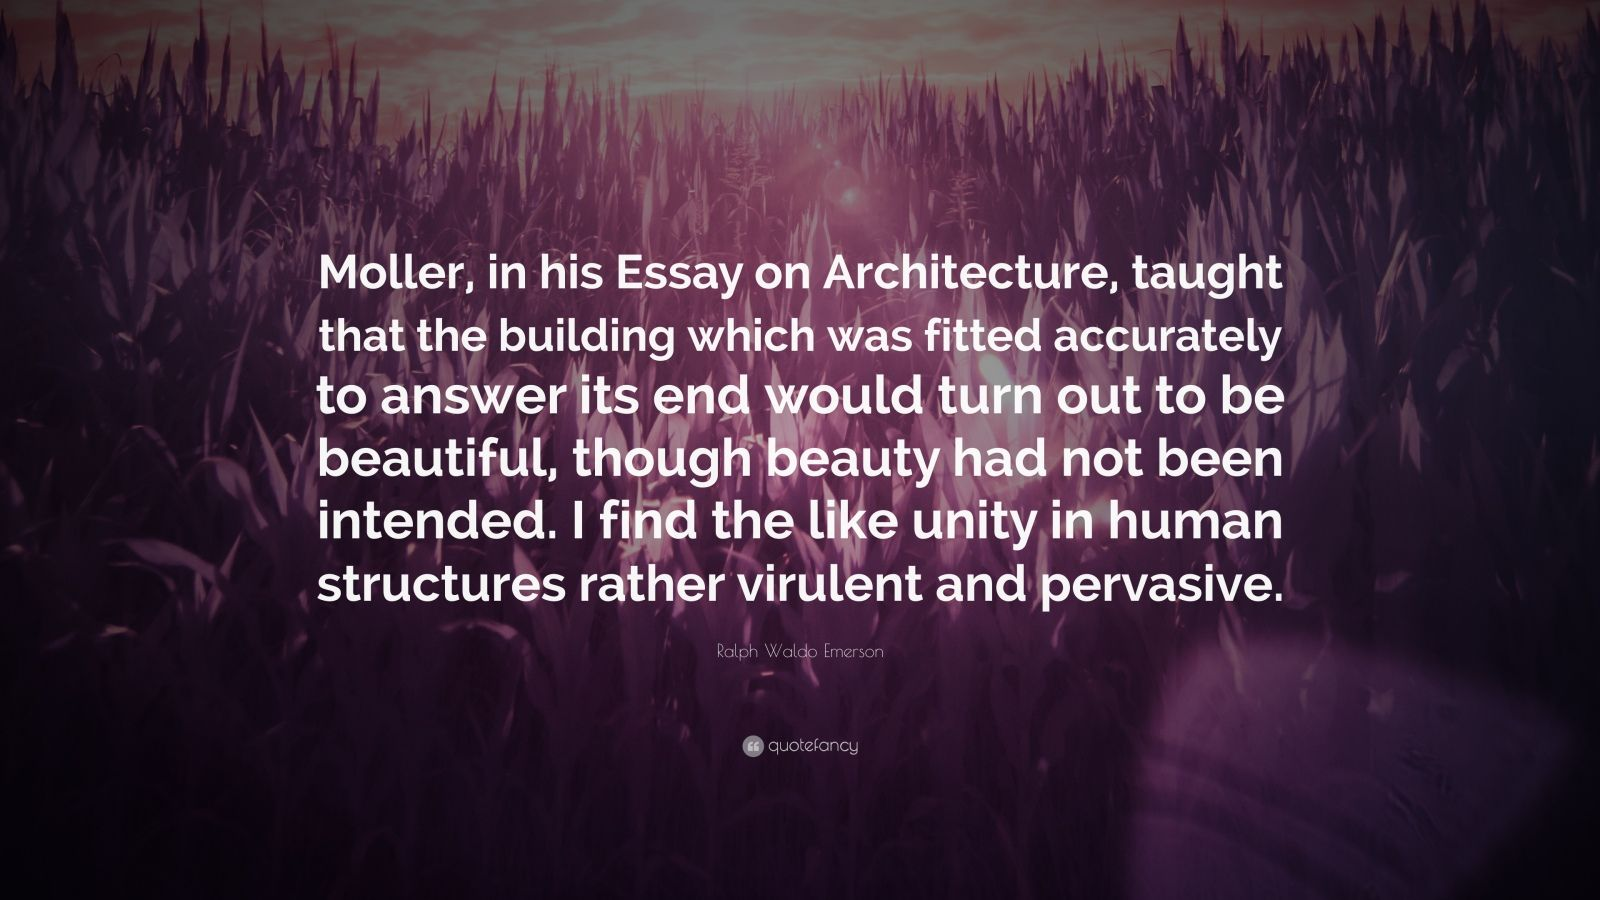 006 Essay Example Ralph Waldo Emerson Quote Moller In His On Architecture Unusual Essays Nature And Selected By Pdf Download First Second Series Full